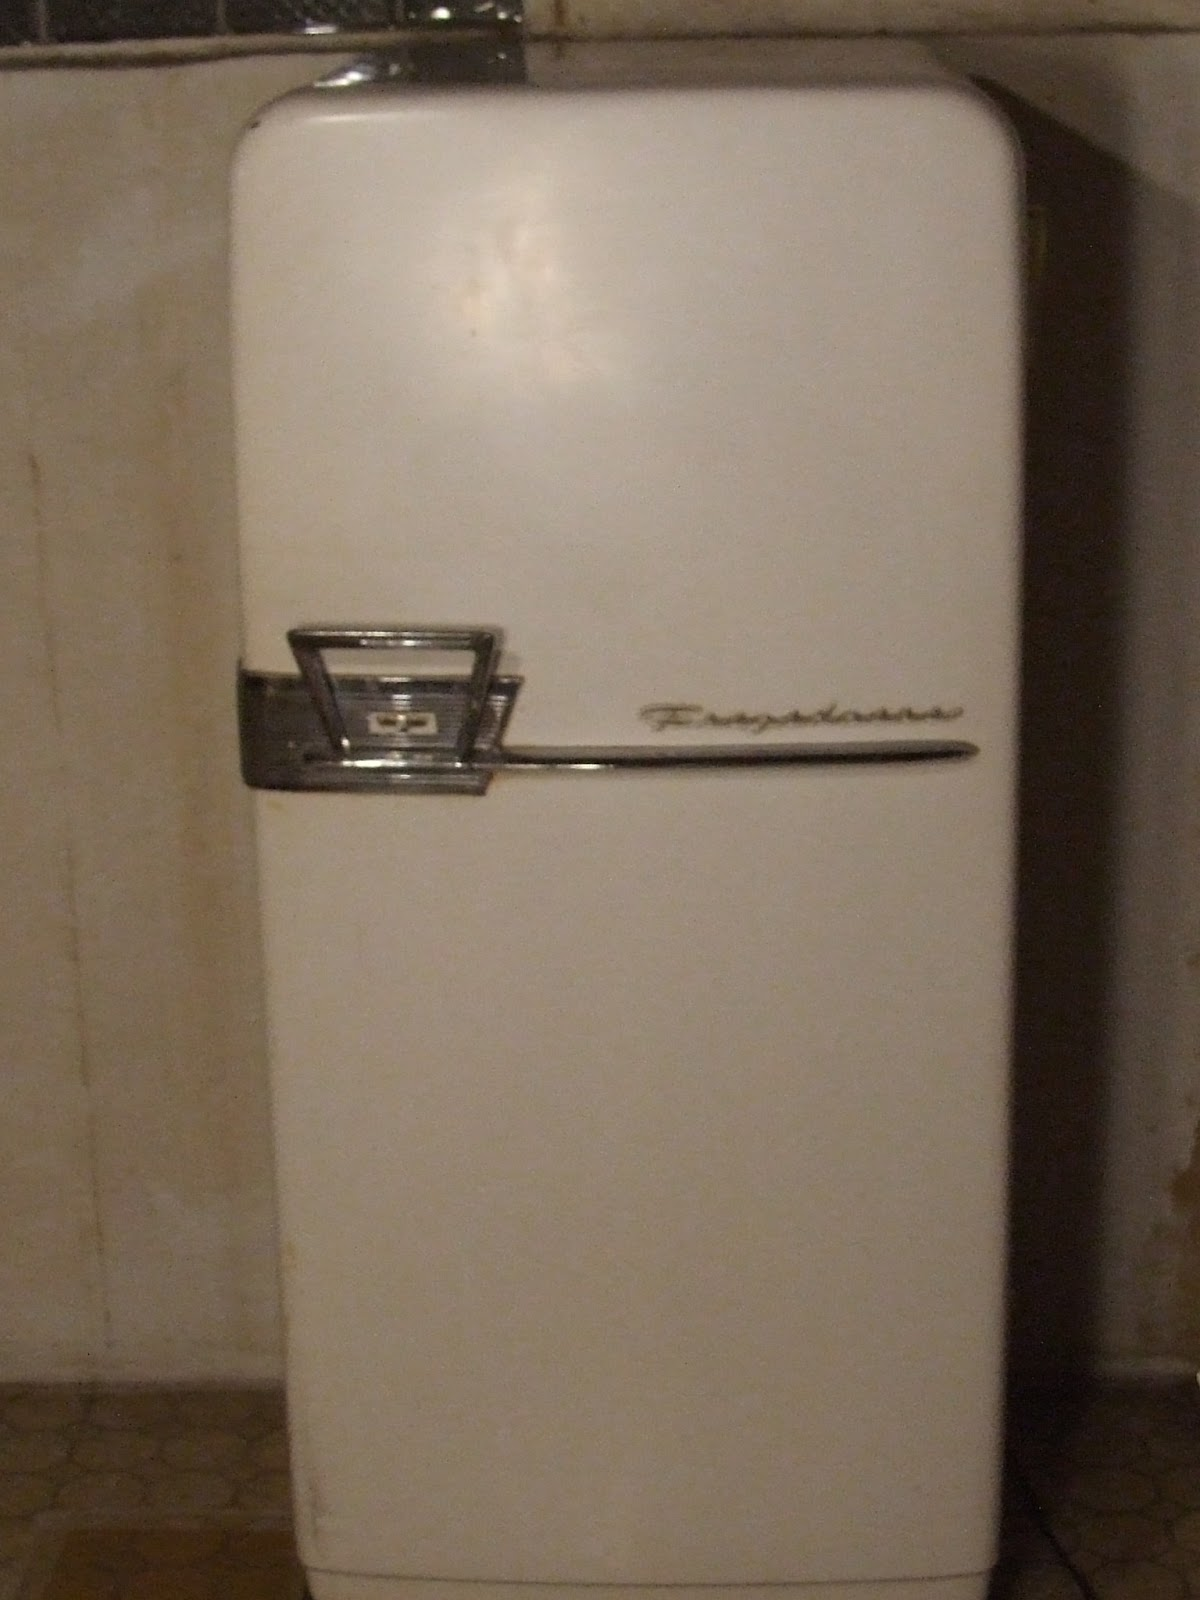 hight resolution of photos of 1950 general electric refrigerator parts